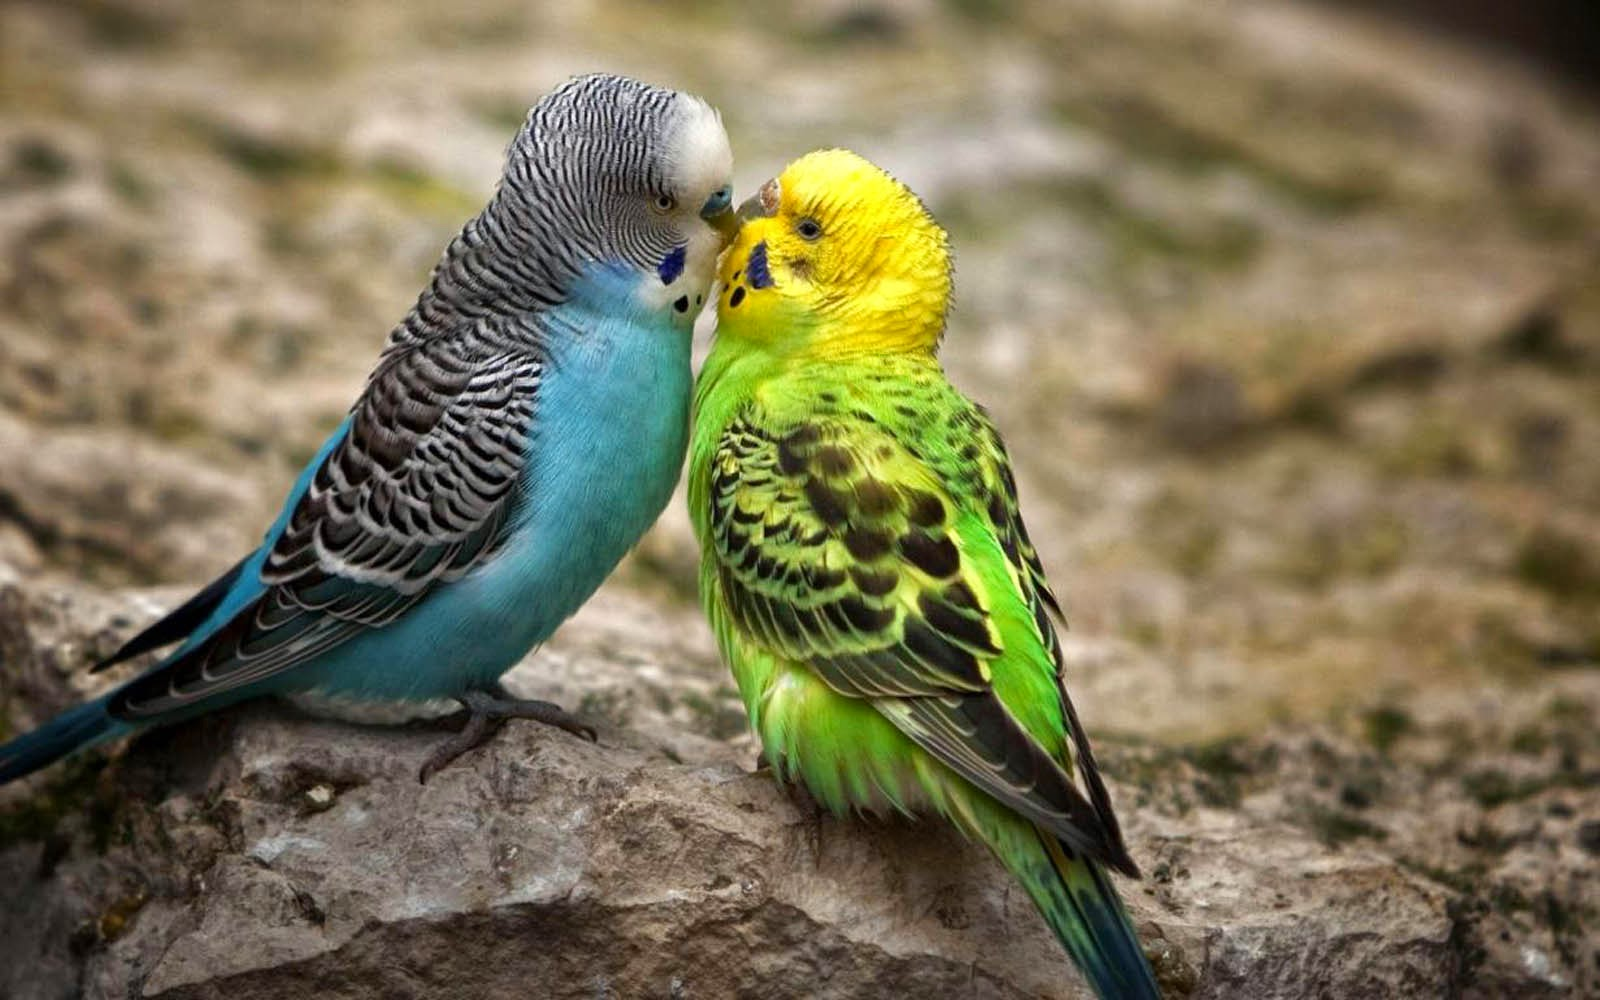 wallpaper backgrounds desktop hd | beautiful kissing birds photos